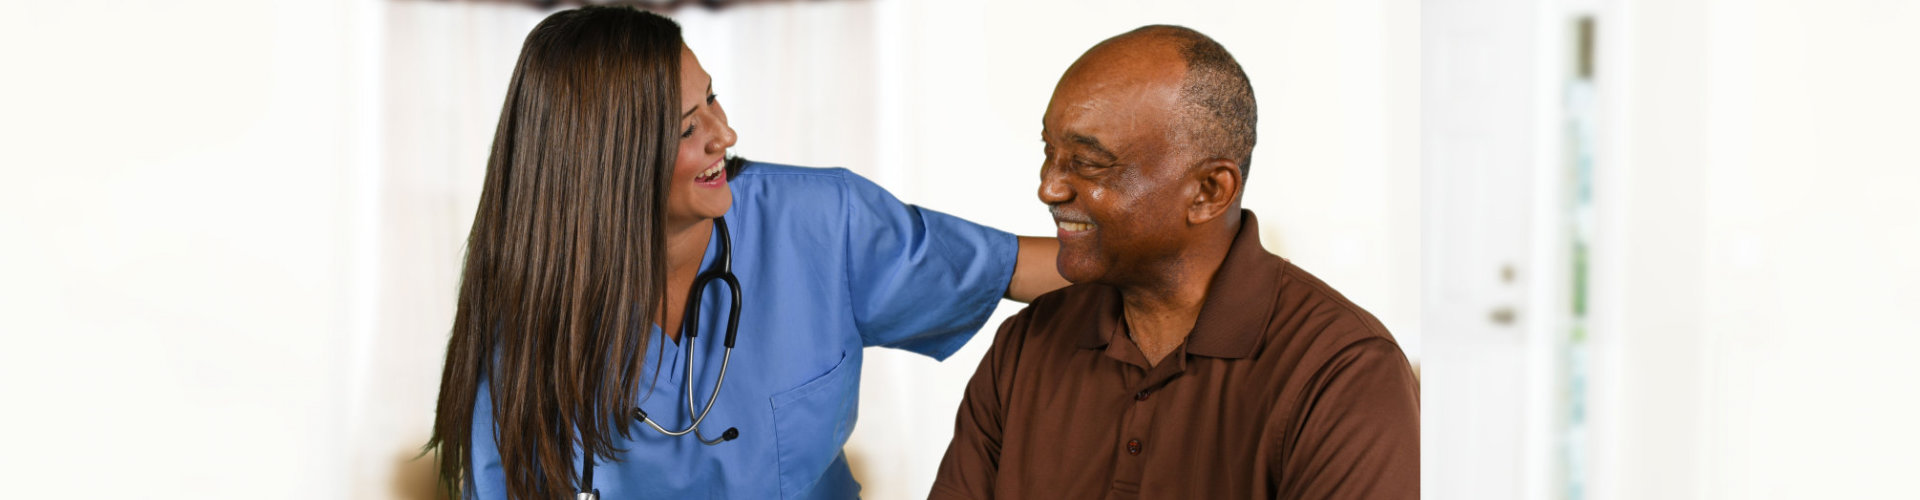 a lady healthcare and old man smiling